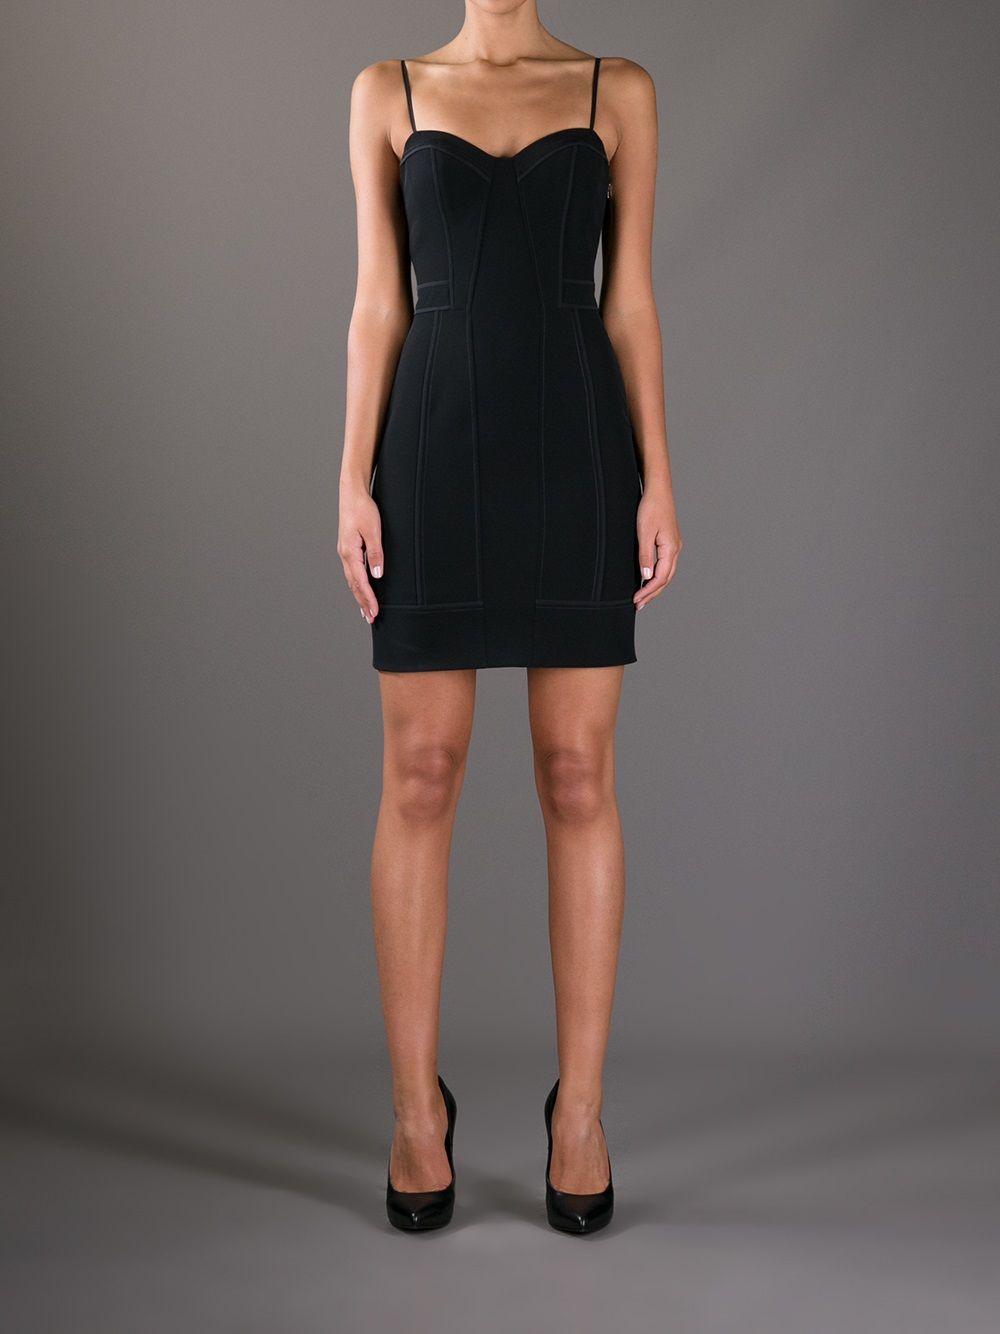 Alexander Wang Fitted Spaghetti Strap Dress In Black Lyst